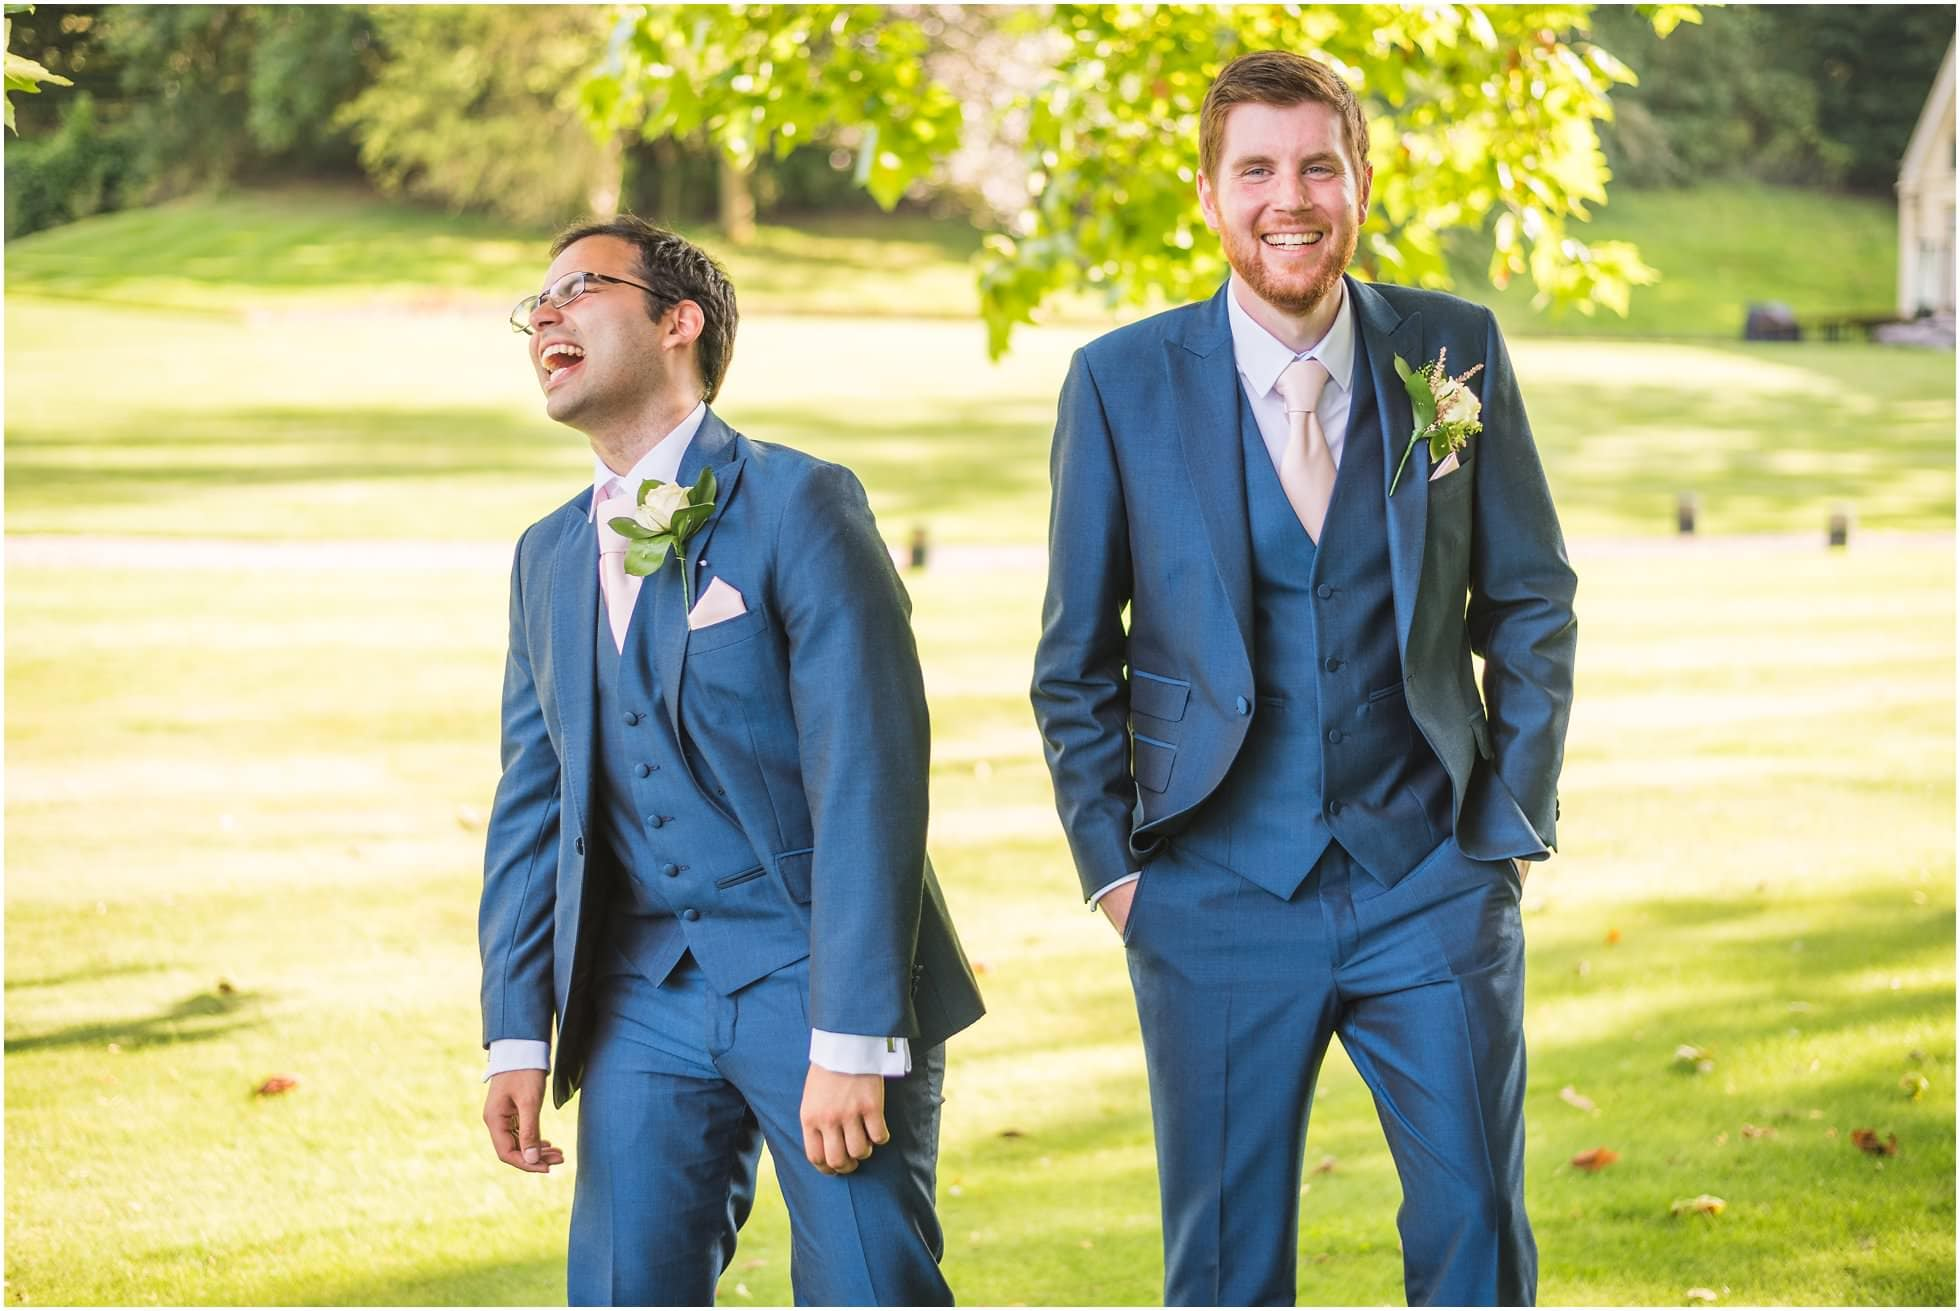 Maison Talbooth gardens with the groom and bestman